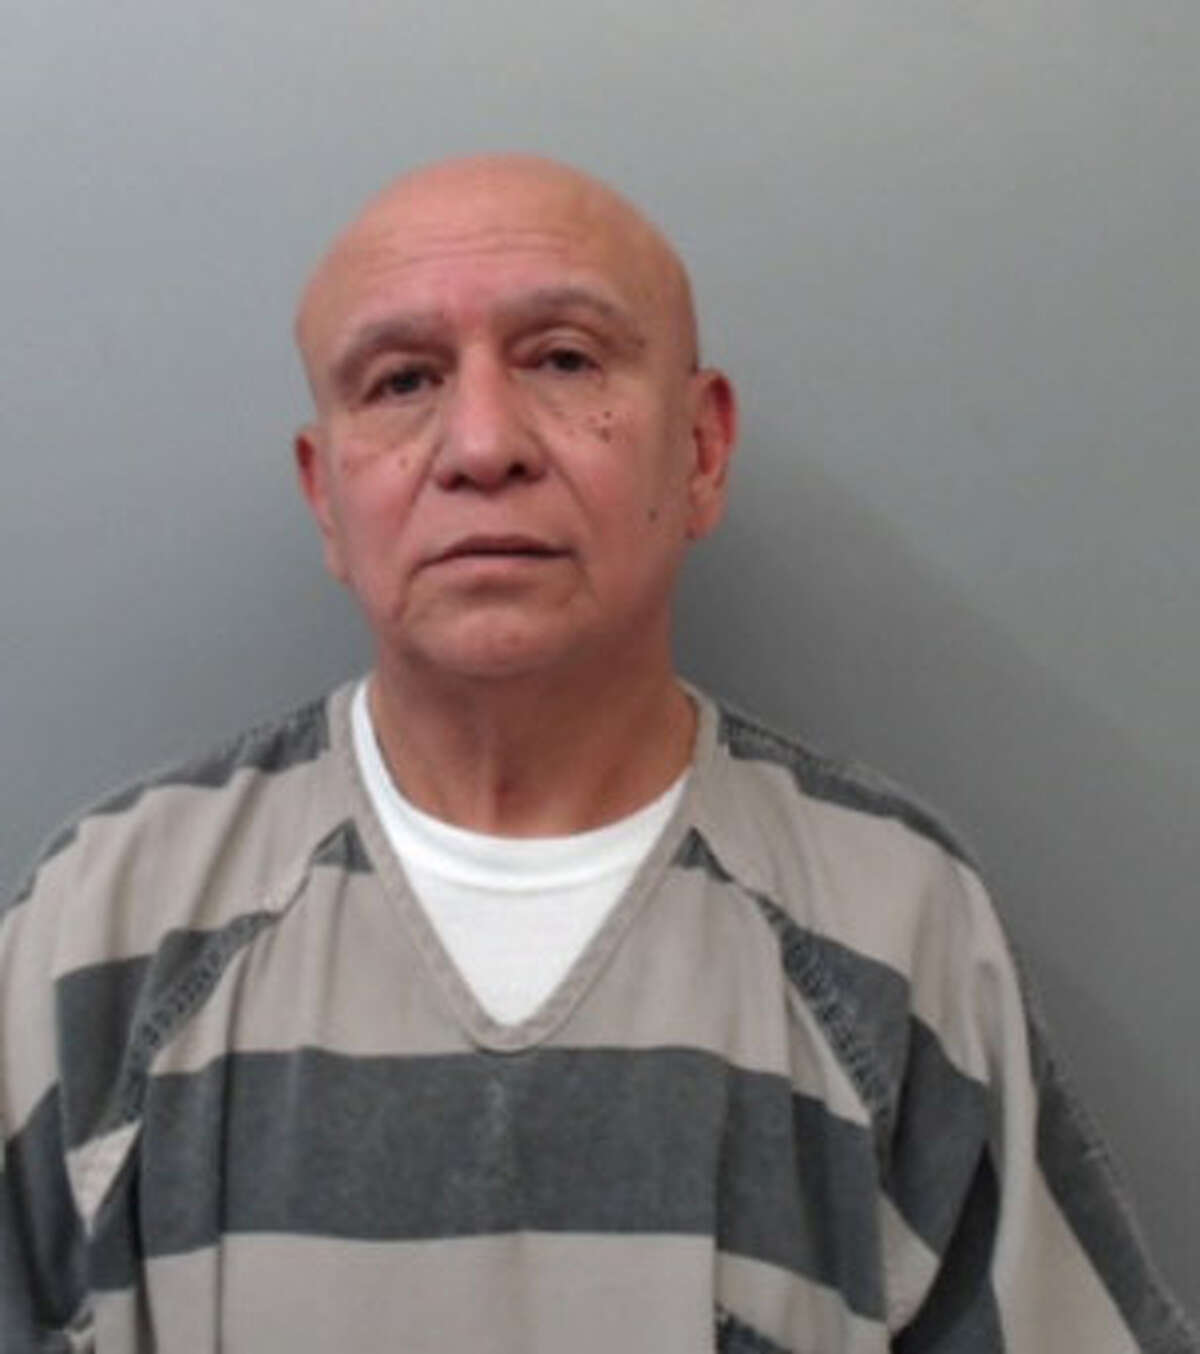 Juan Luis Jaramillo, 64, was charged with two counts of accident involving injury and one count of accident involving damage to a vehicle.